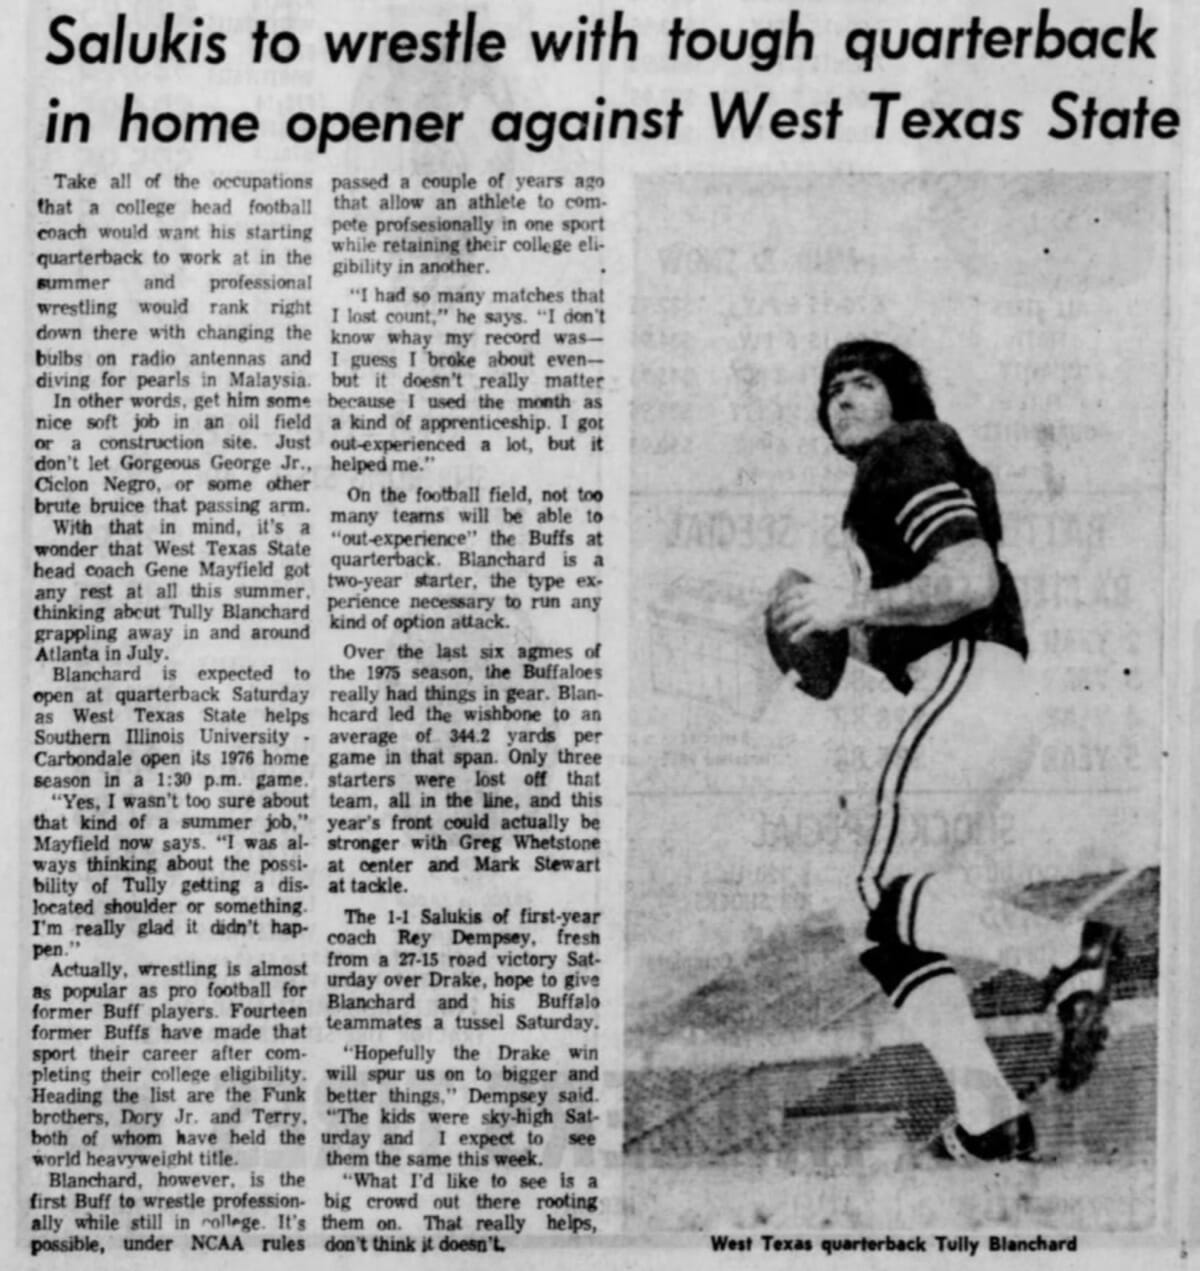 Tully Blanchard, while quarterback of West Texas State, was featured in this Southern Illinoisan newspaper article. (Monday, September 20, 1976 edition)